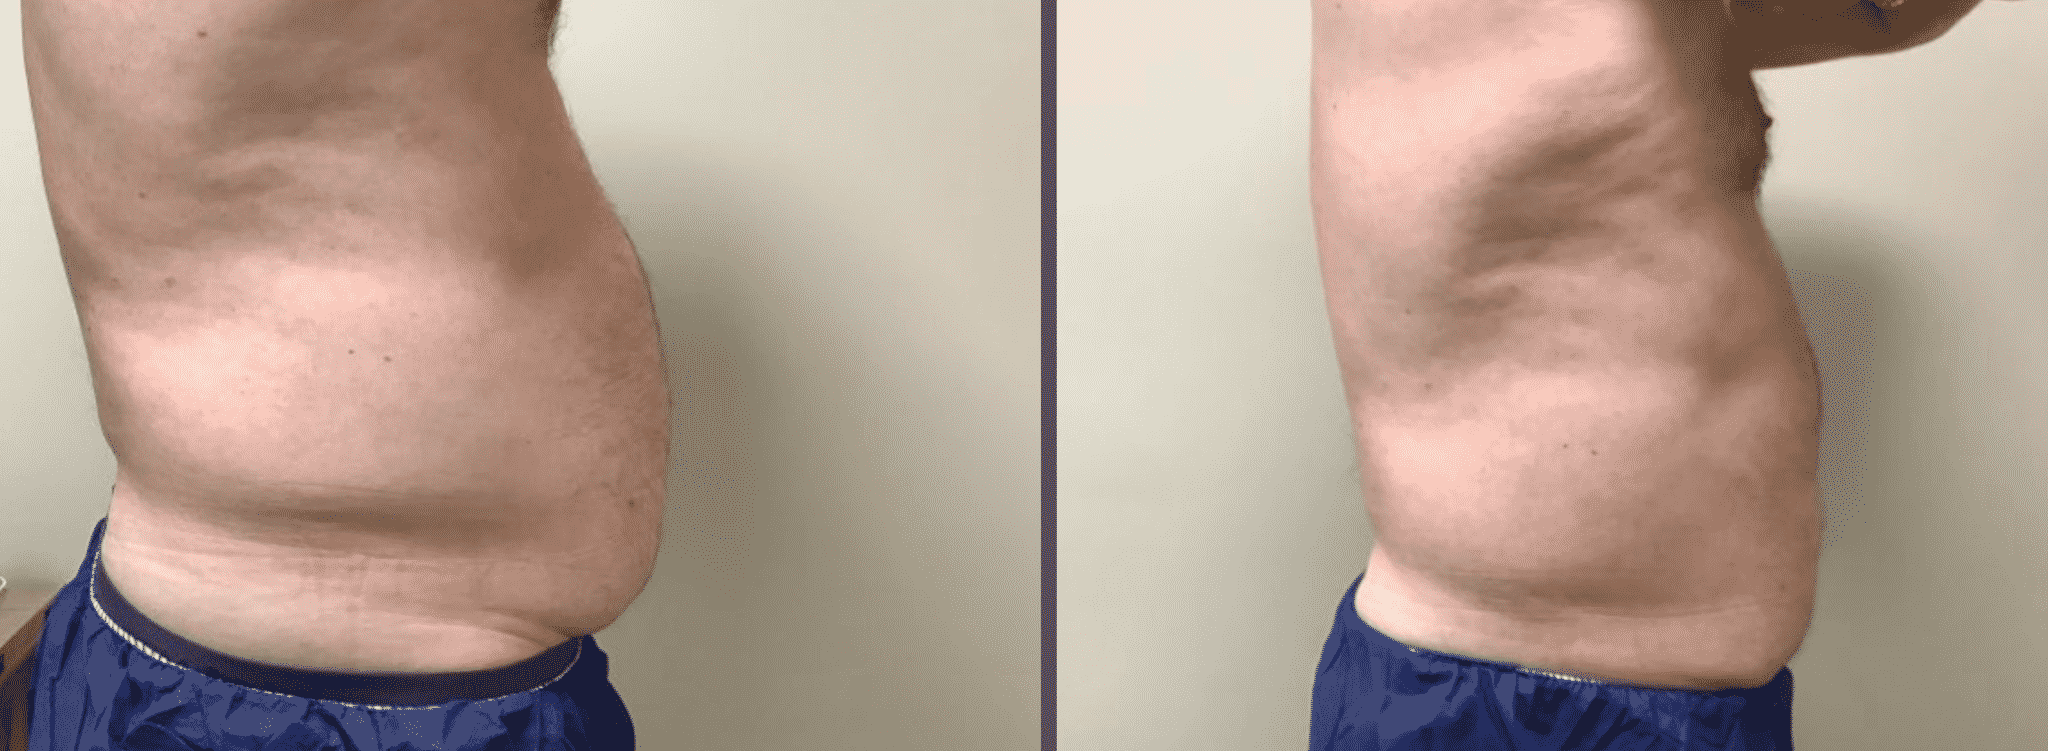 Male Patient Before & After Cooltone Side View